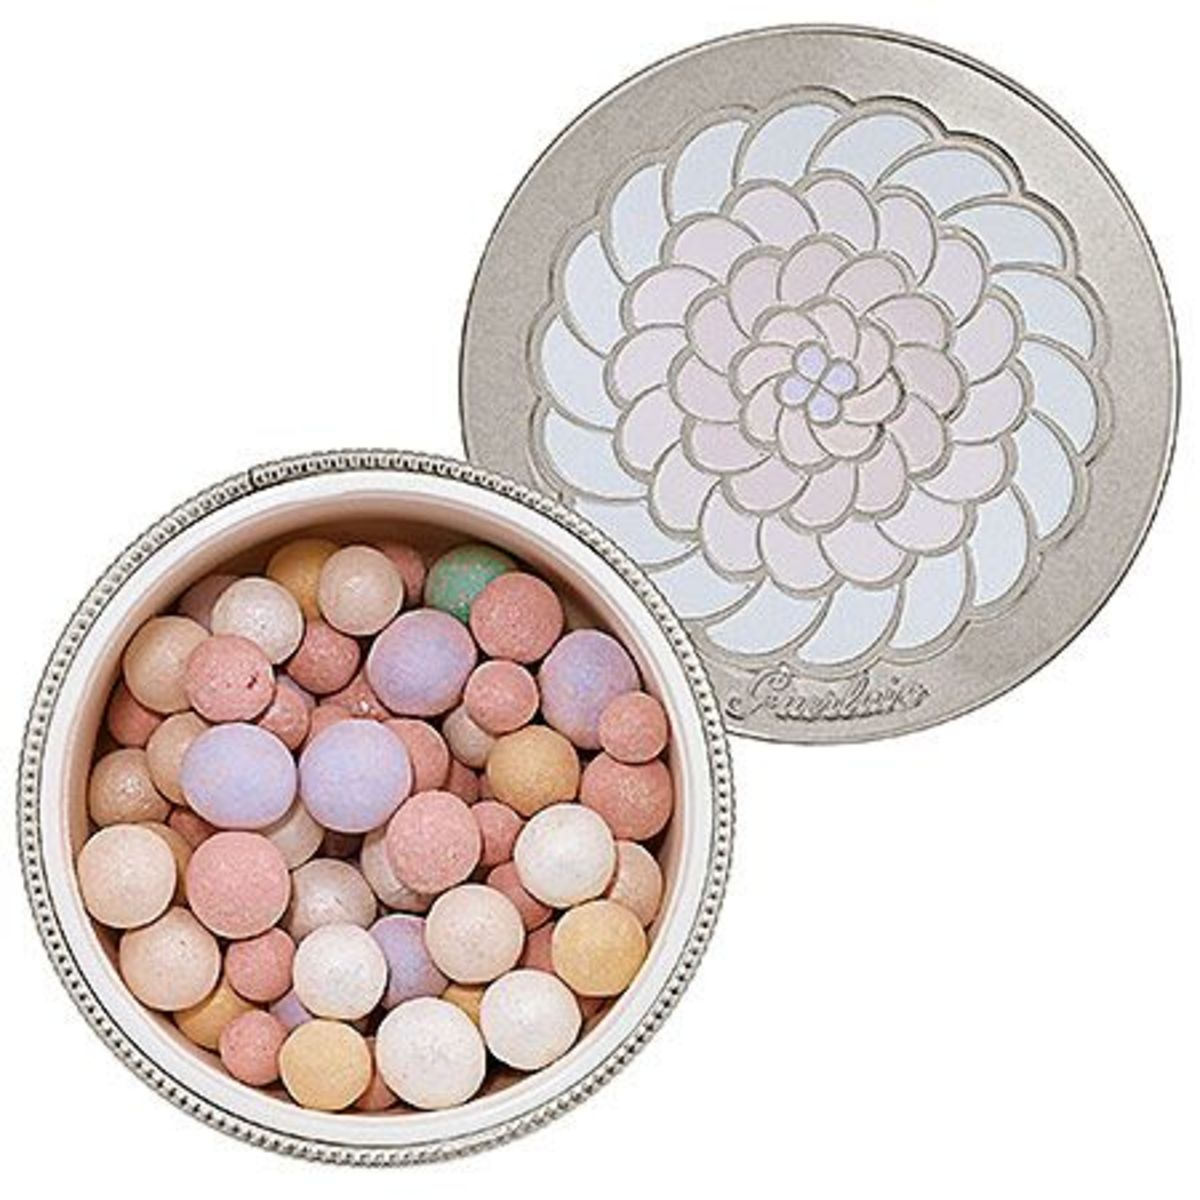 Guerlain Meteorites highlighting makeup